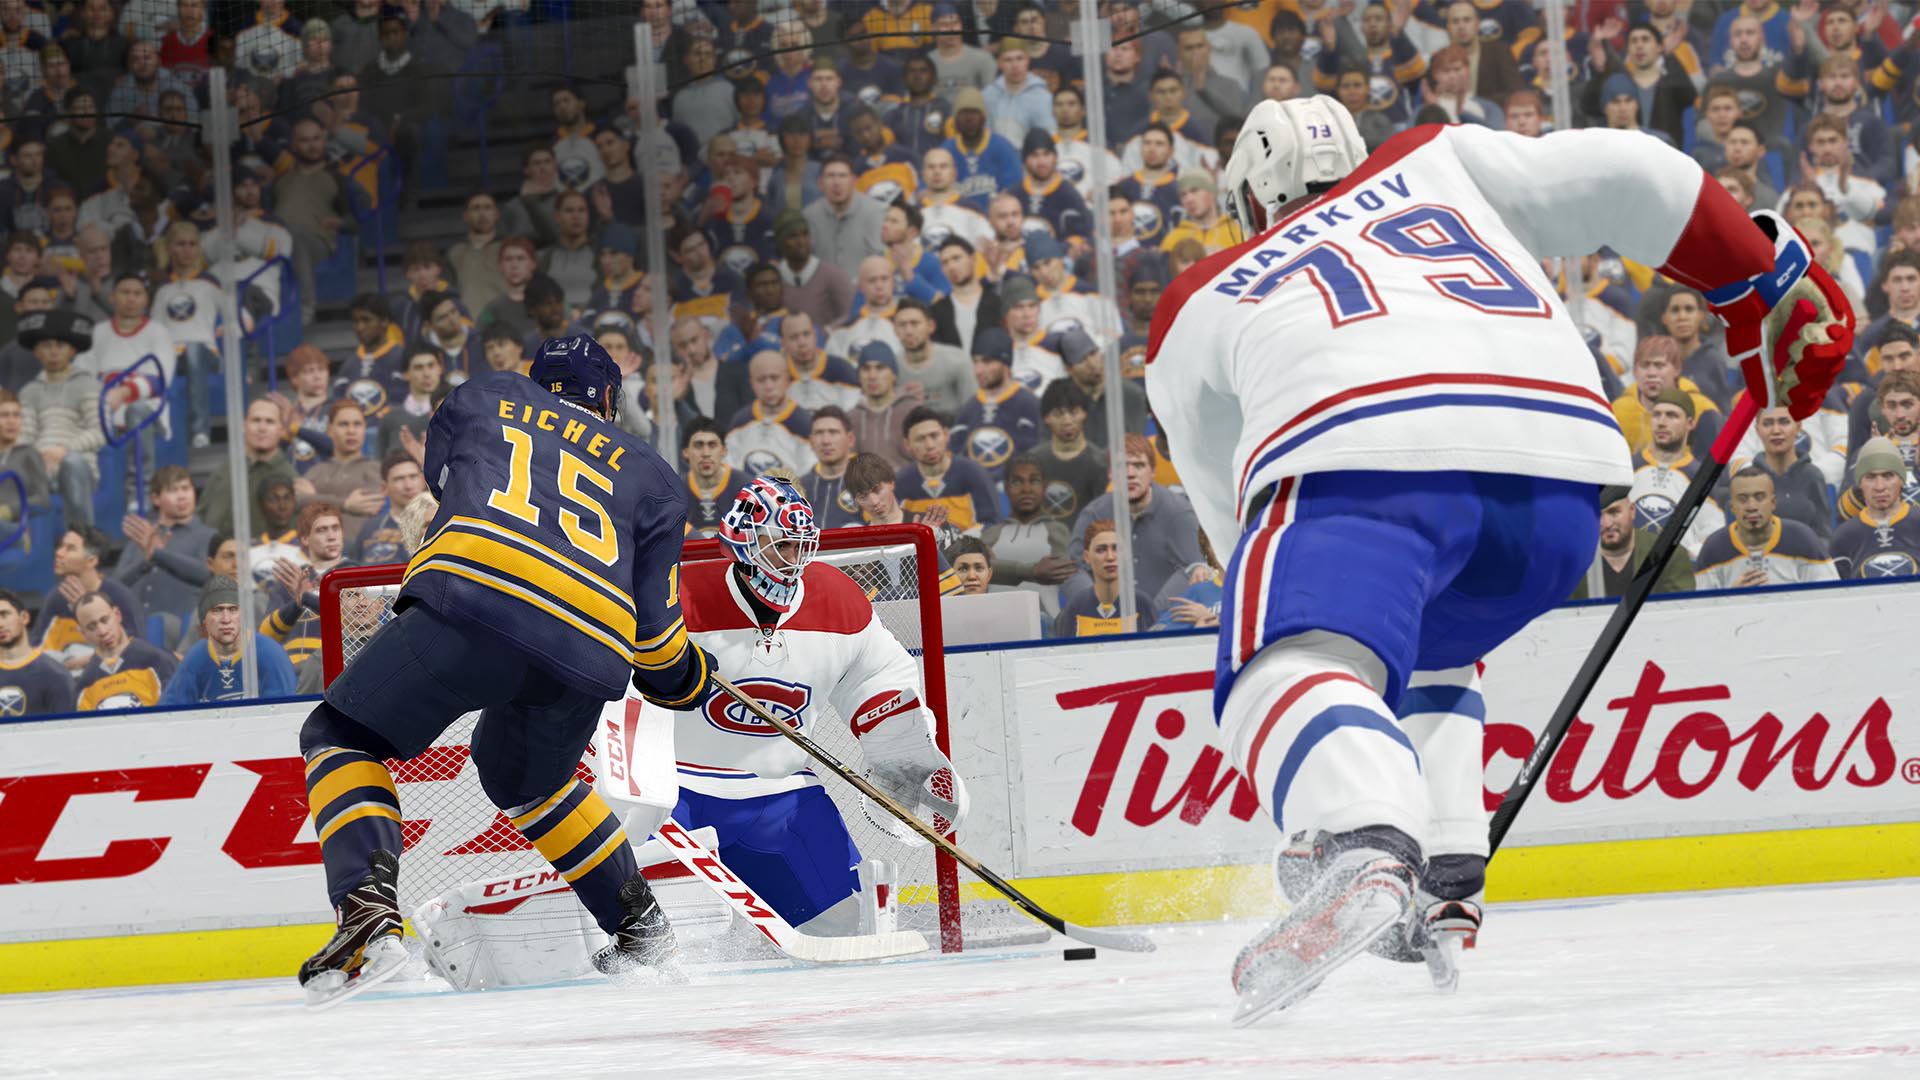 Nhl 18 Game Ps4 Playstation